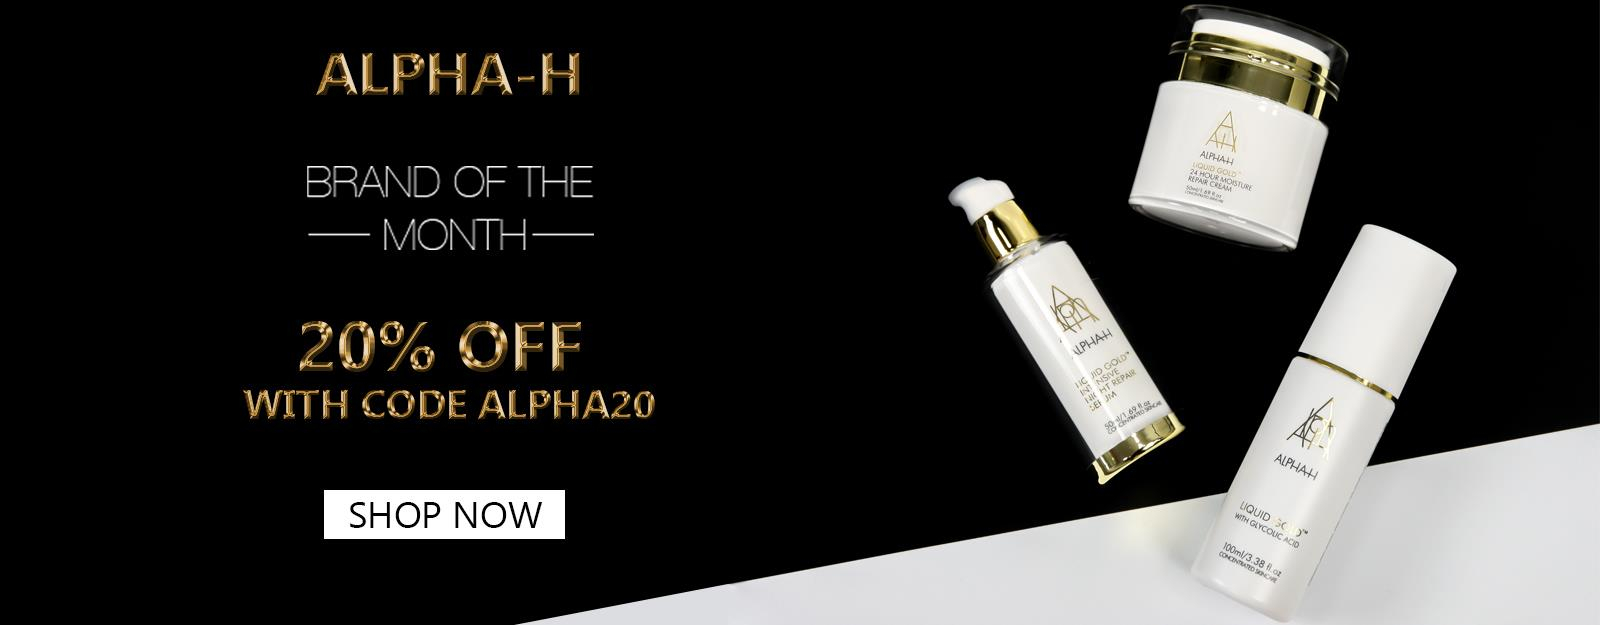 Brand of the month - Alpha-H